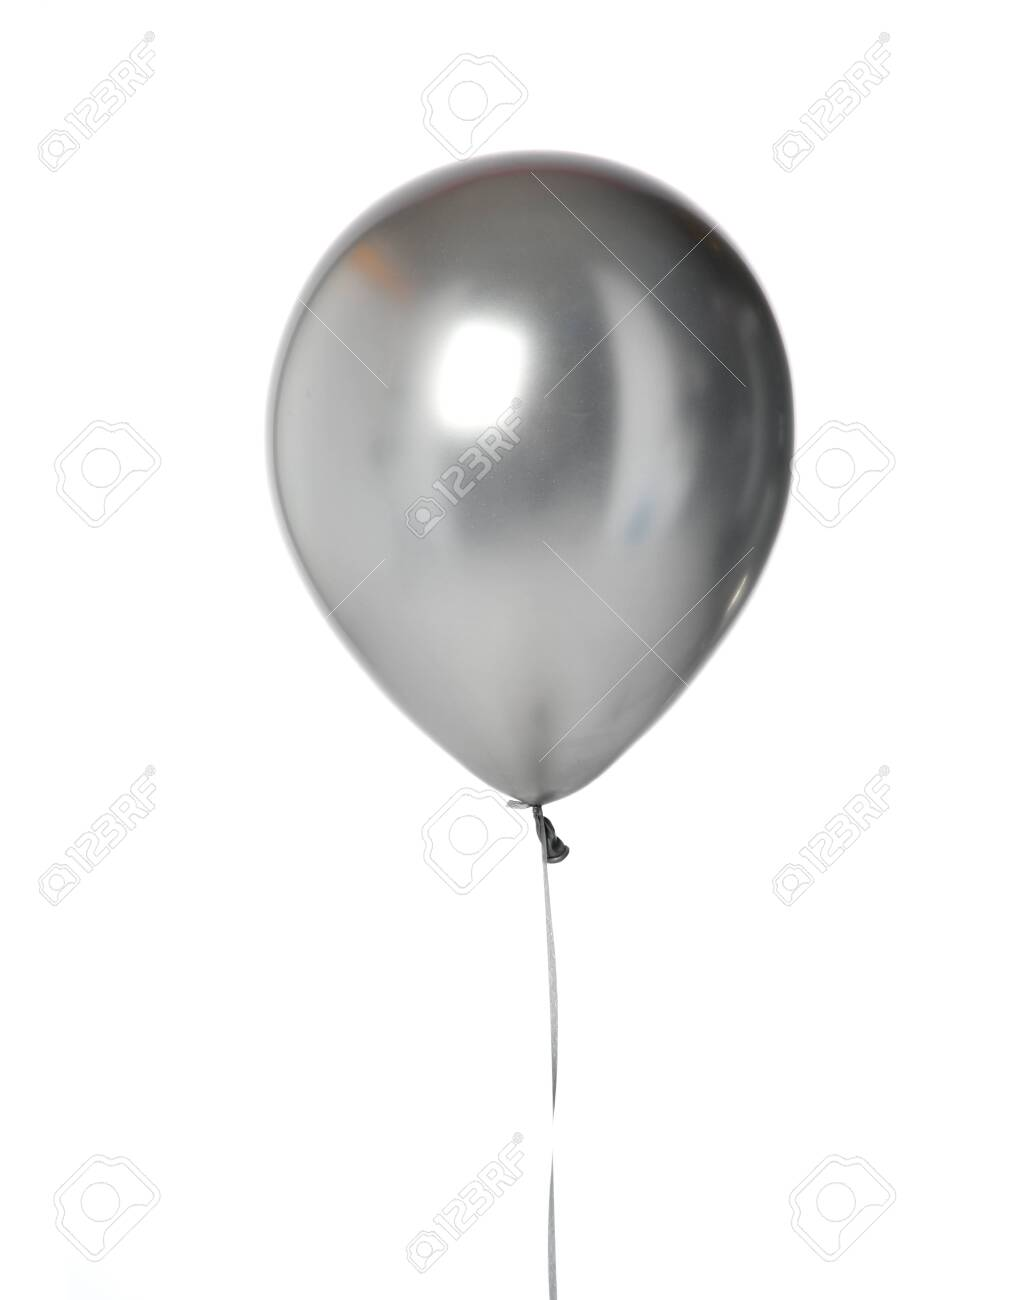 Big silver metallic latex balloon for birthday party isolated on a white background - 134406514